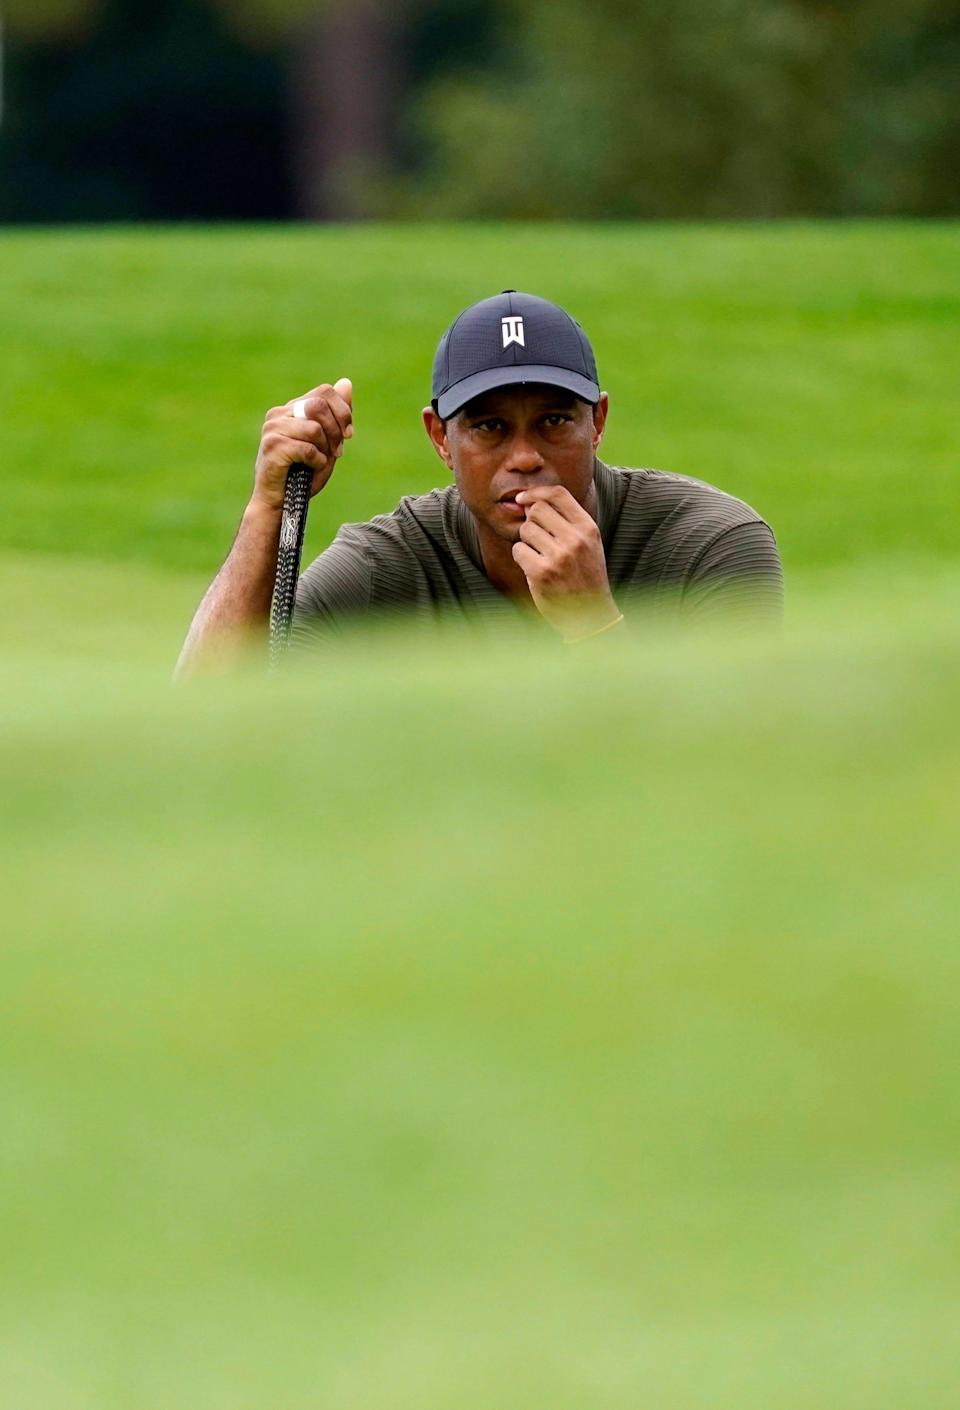 Tiger Woods has a long recovery ahead of him before even thinking about swinging a golf club.